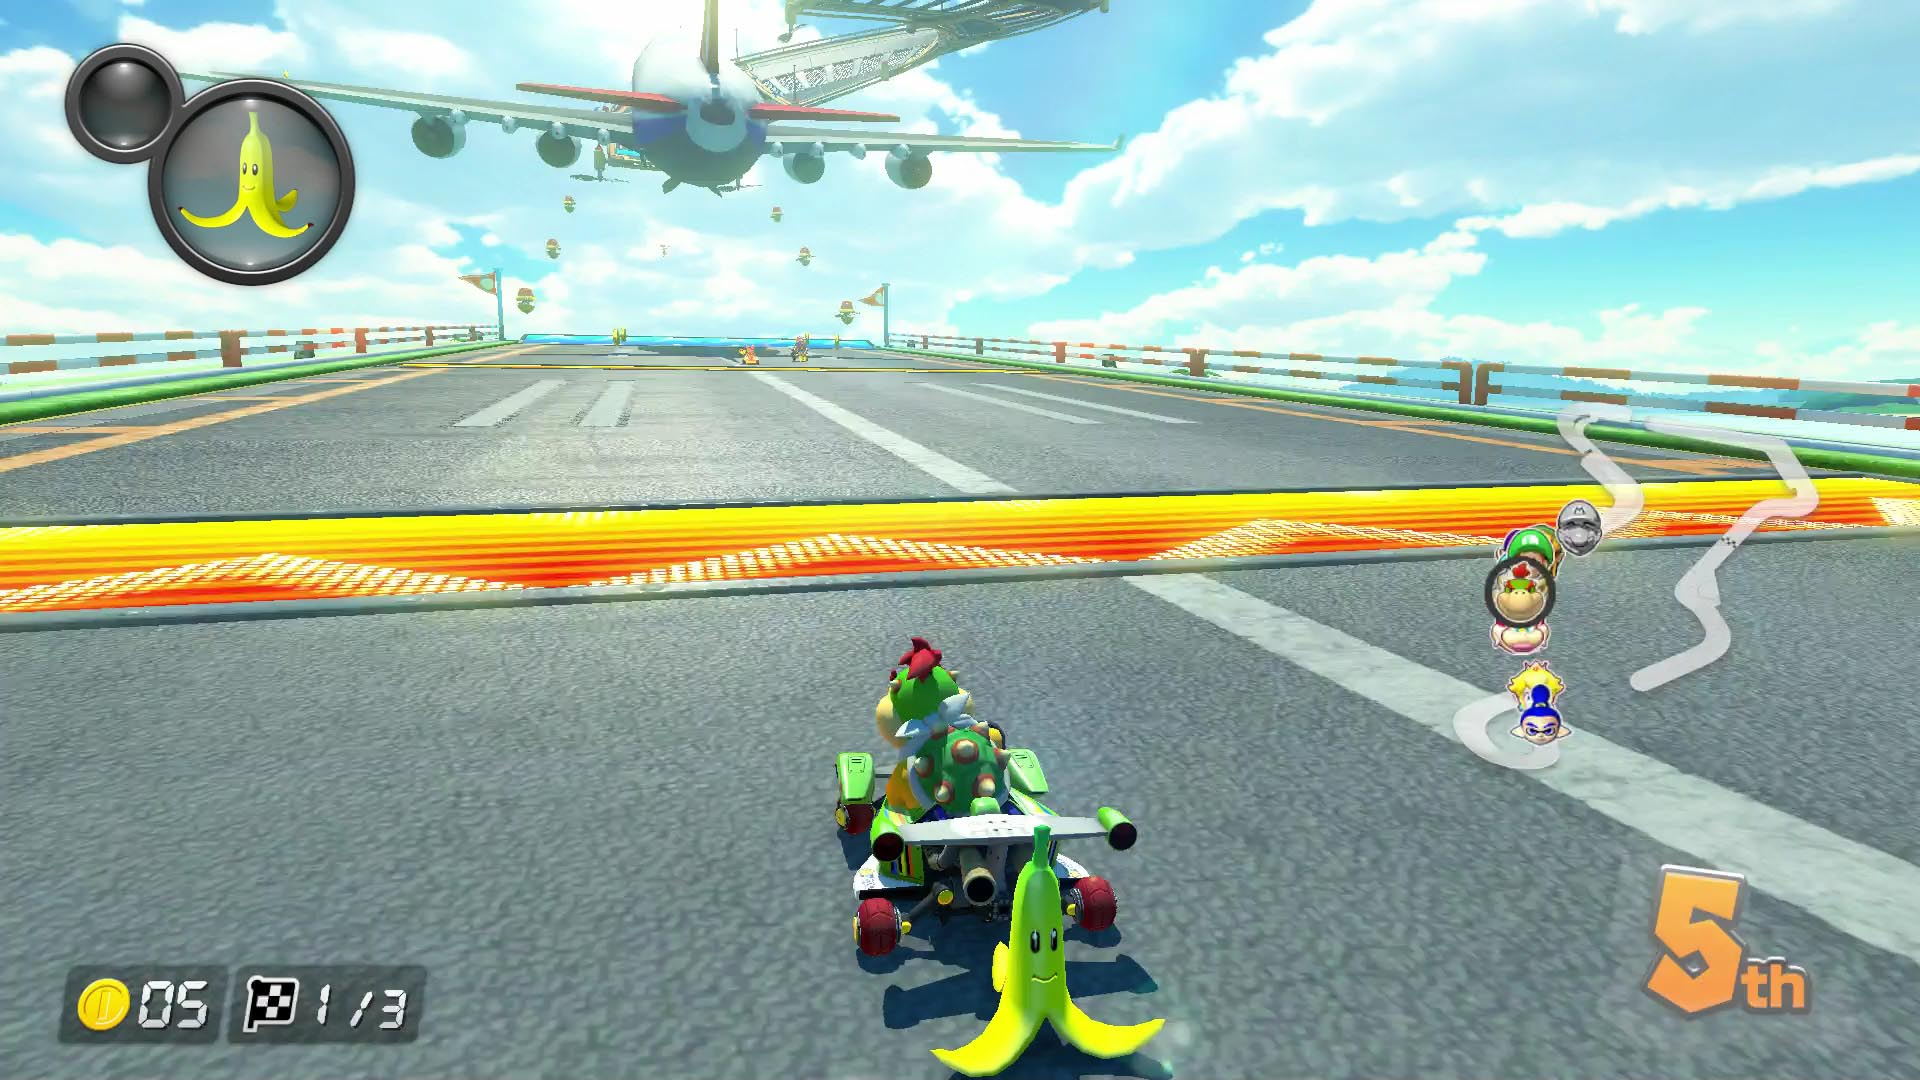 in the original mario kart 8 holding an item behind your kart remove it from your currently held arsenal that has not changed in mario kart 8